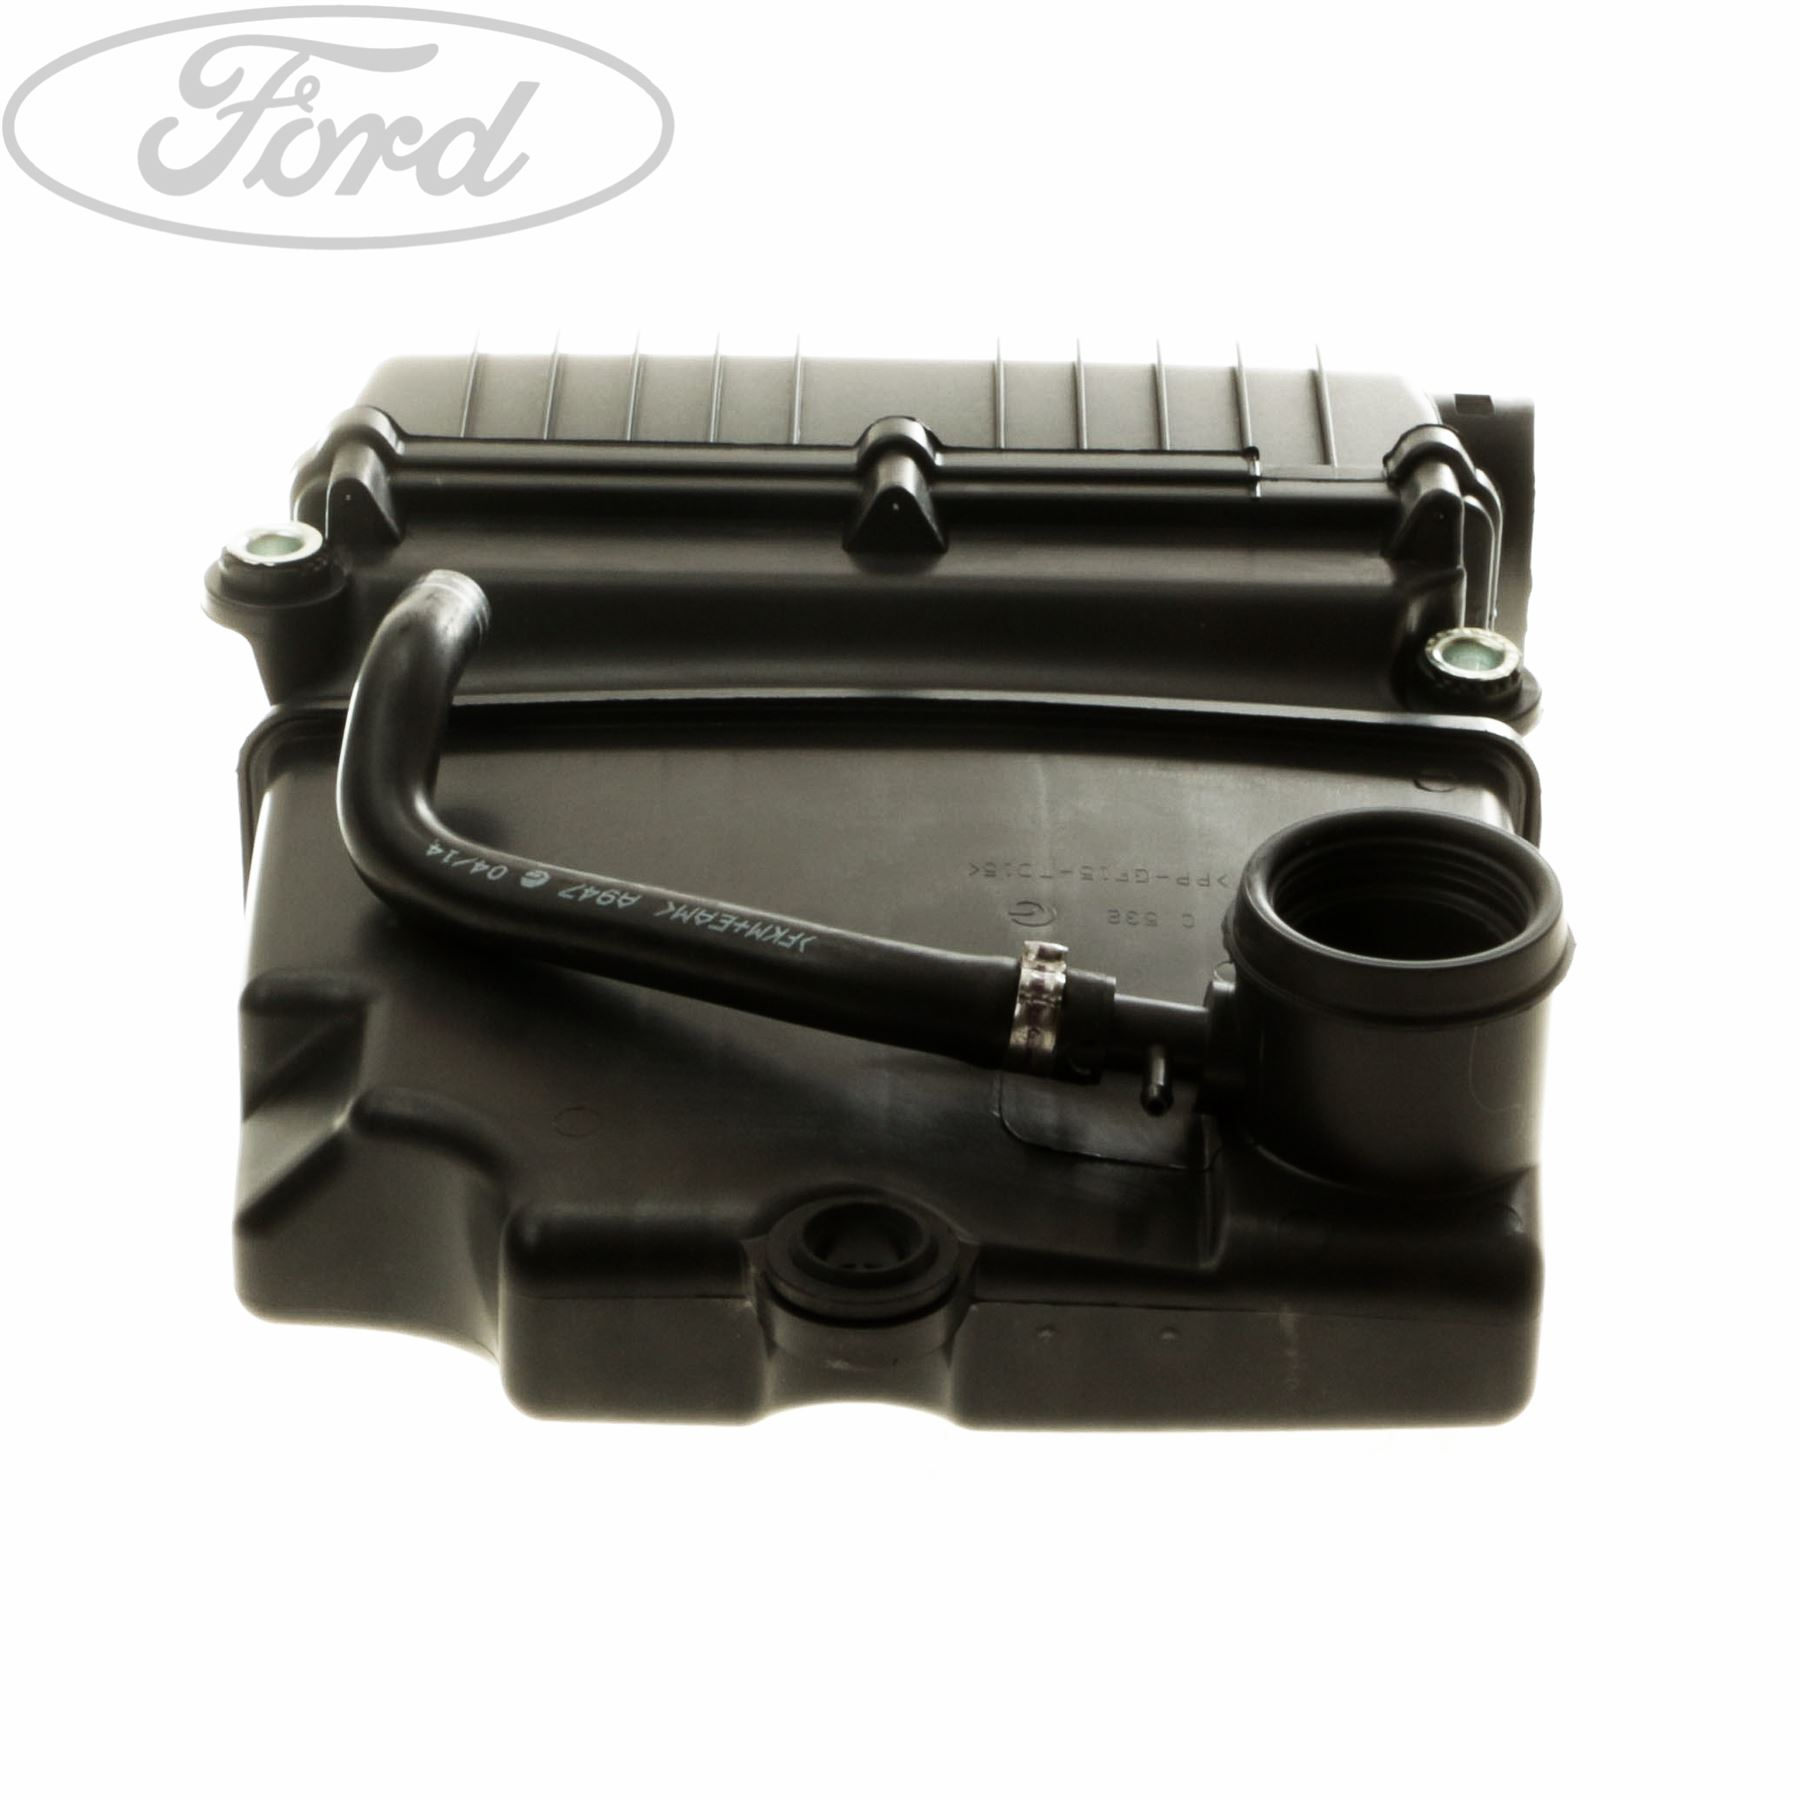 Genuine Ford Air Box Cleaner 1702437